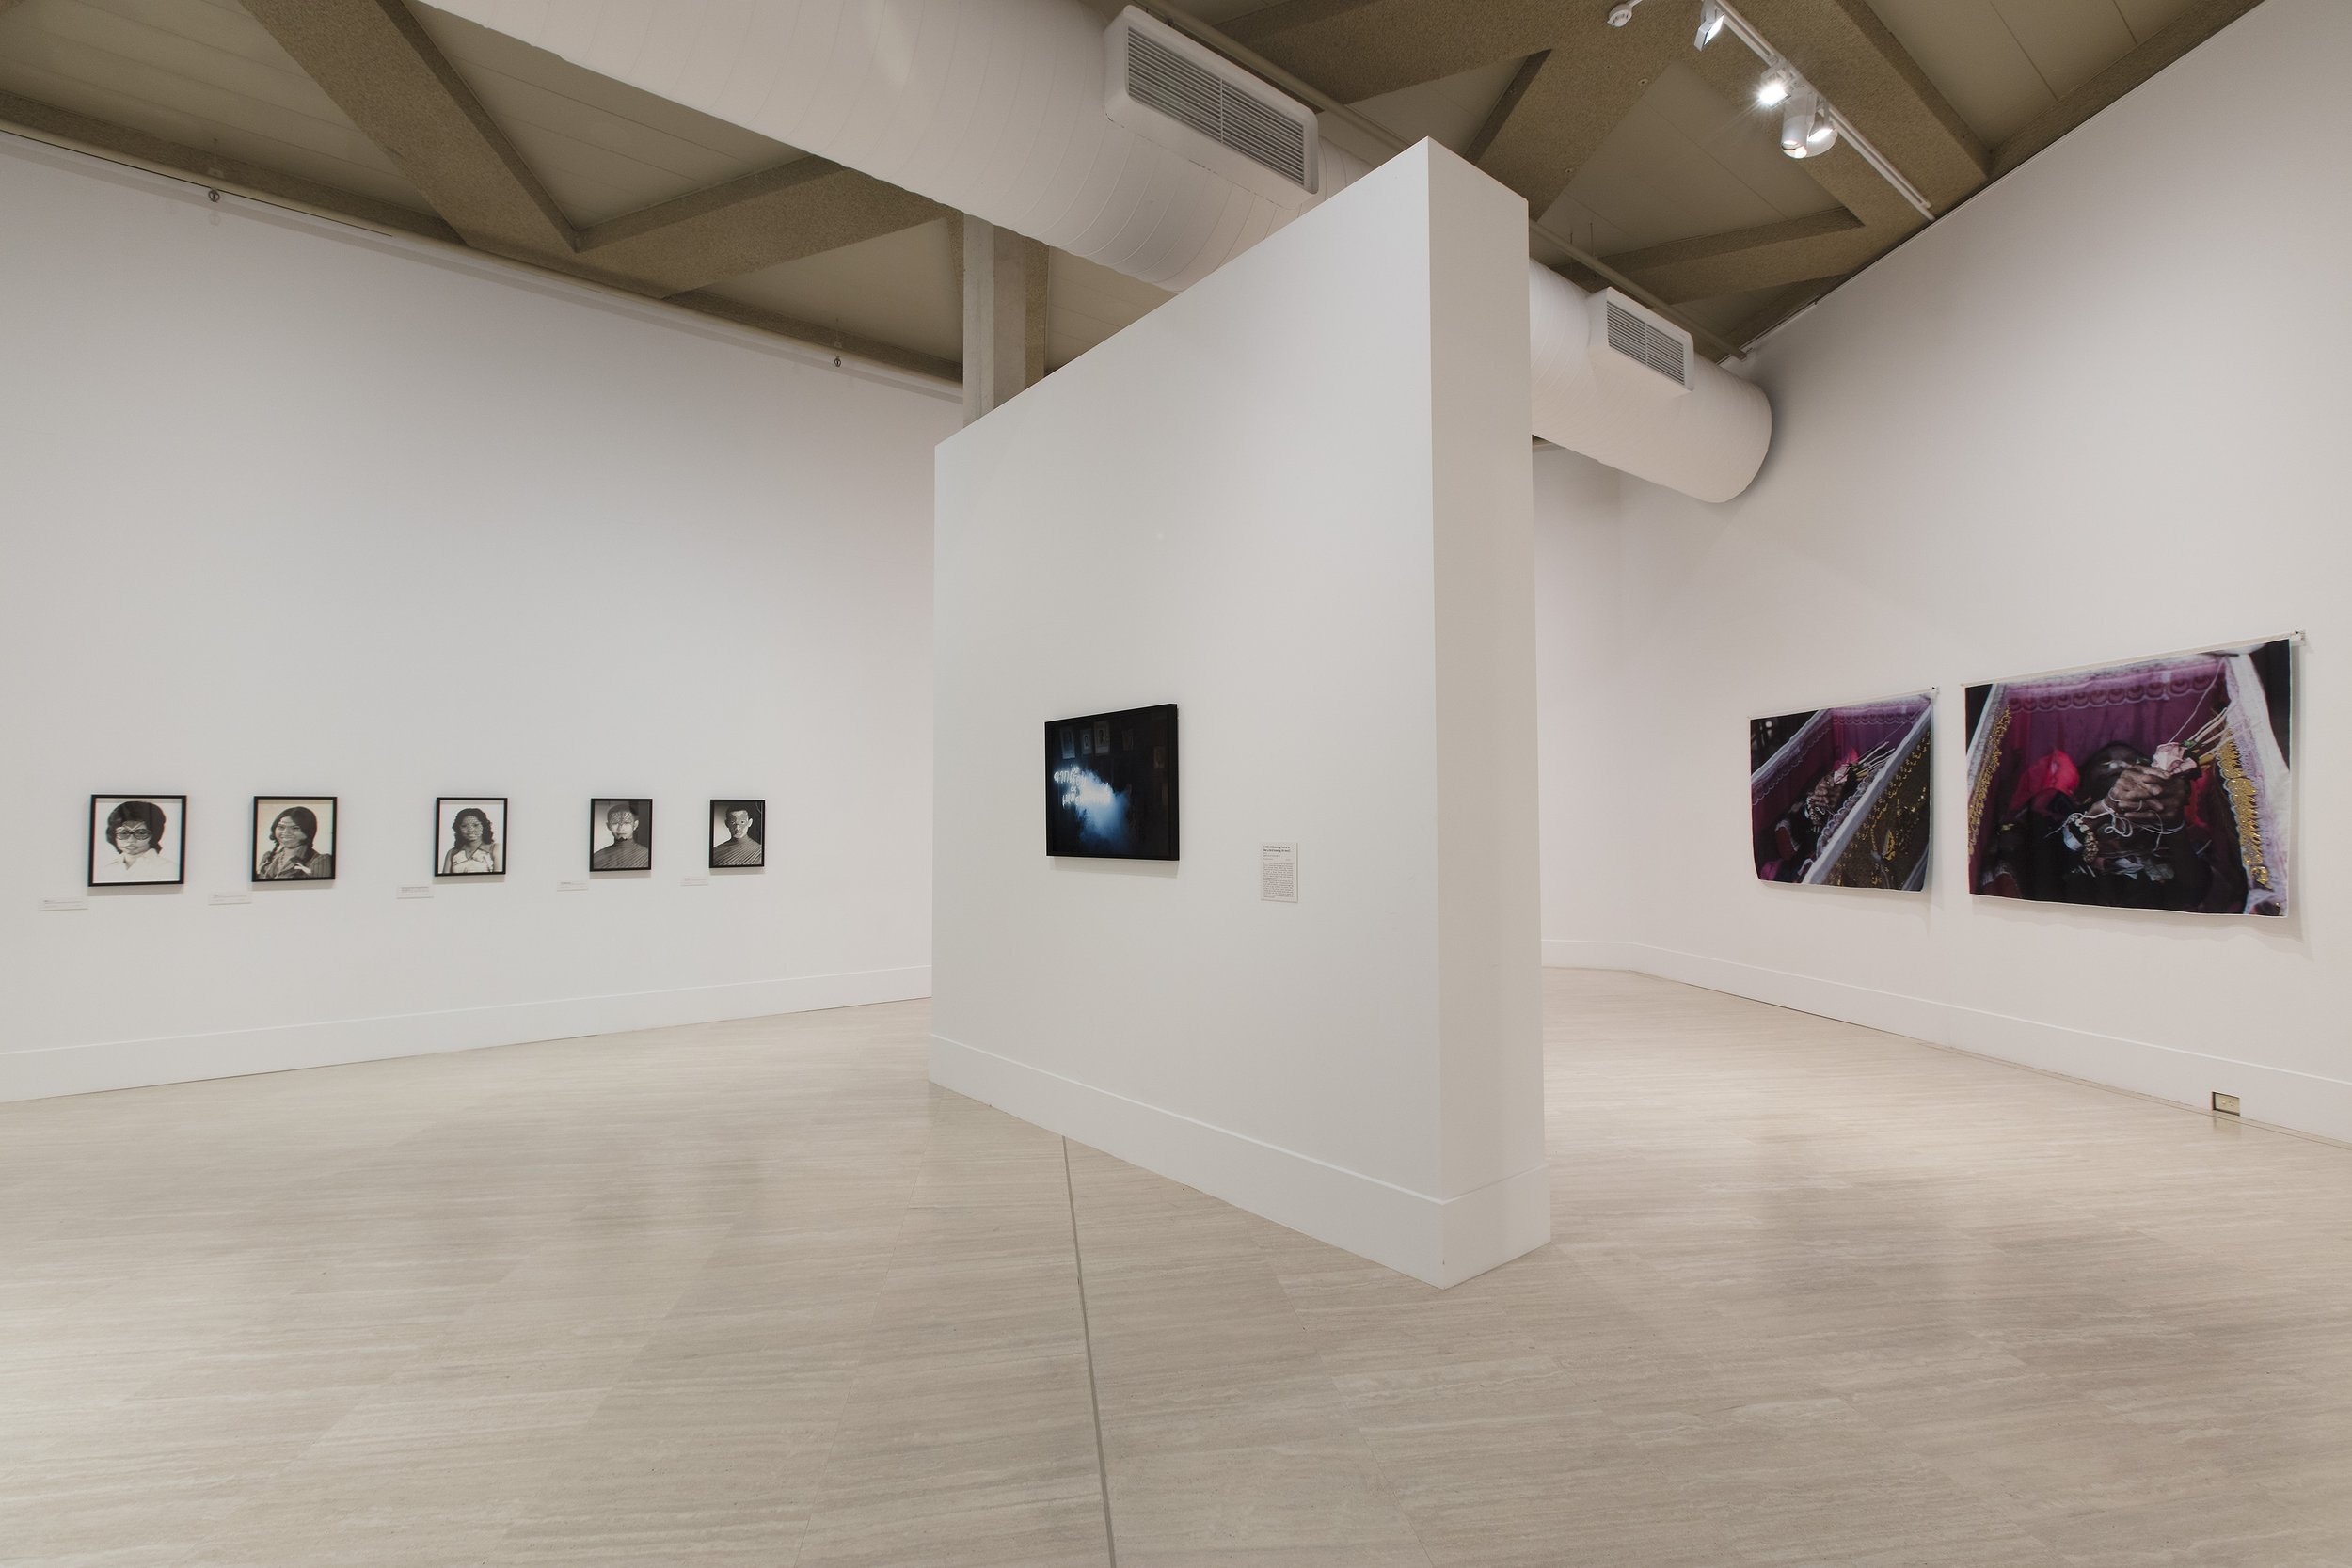 Installation view. Image courtesy of the Art Gallery of Western Australia. Photographer: Bo Wong